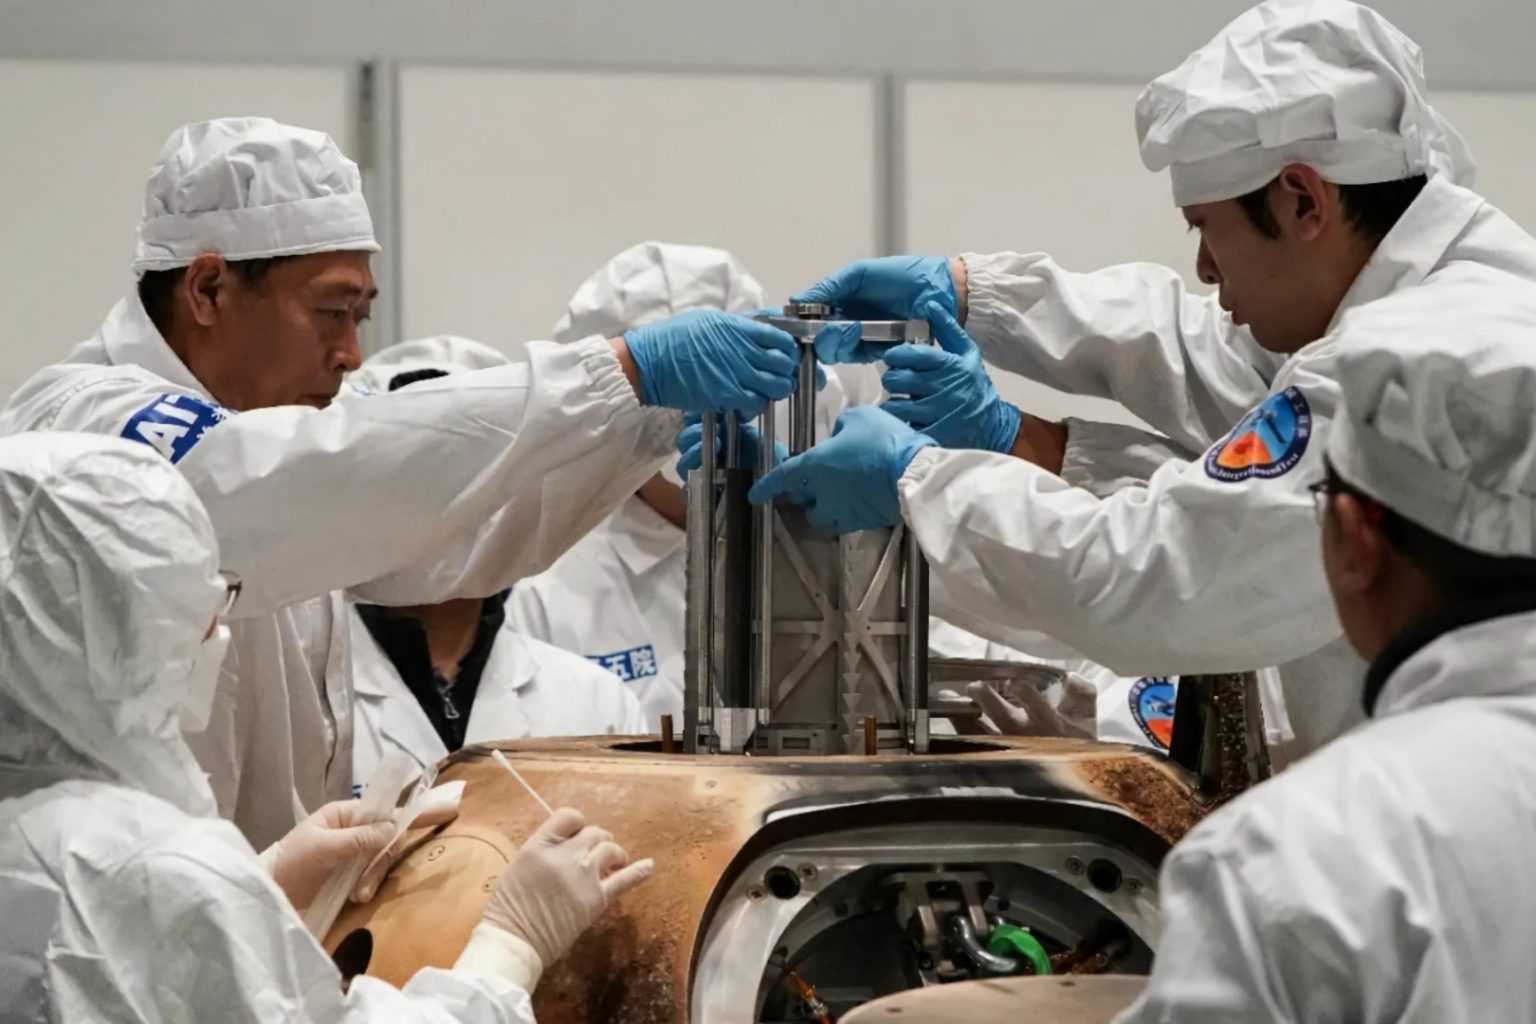 Experts remove a container with lunar samples from the landing capsule. Credit: Fu Yifei / Science and Technology Daily.